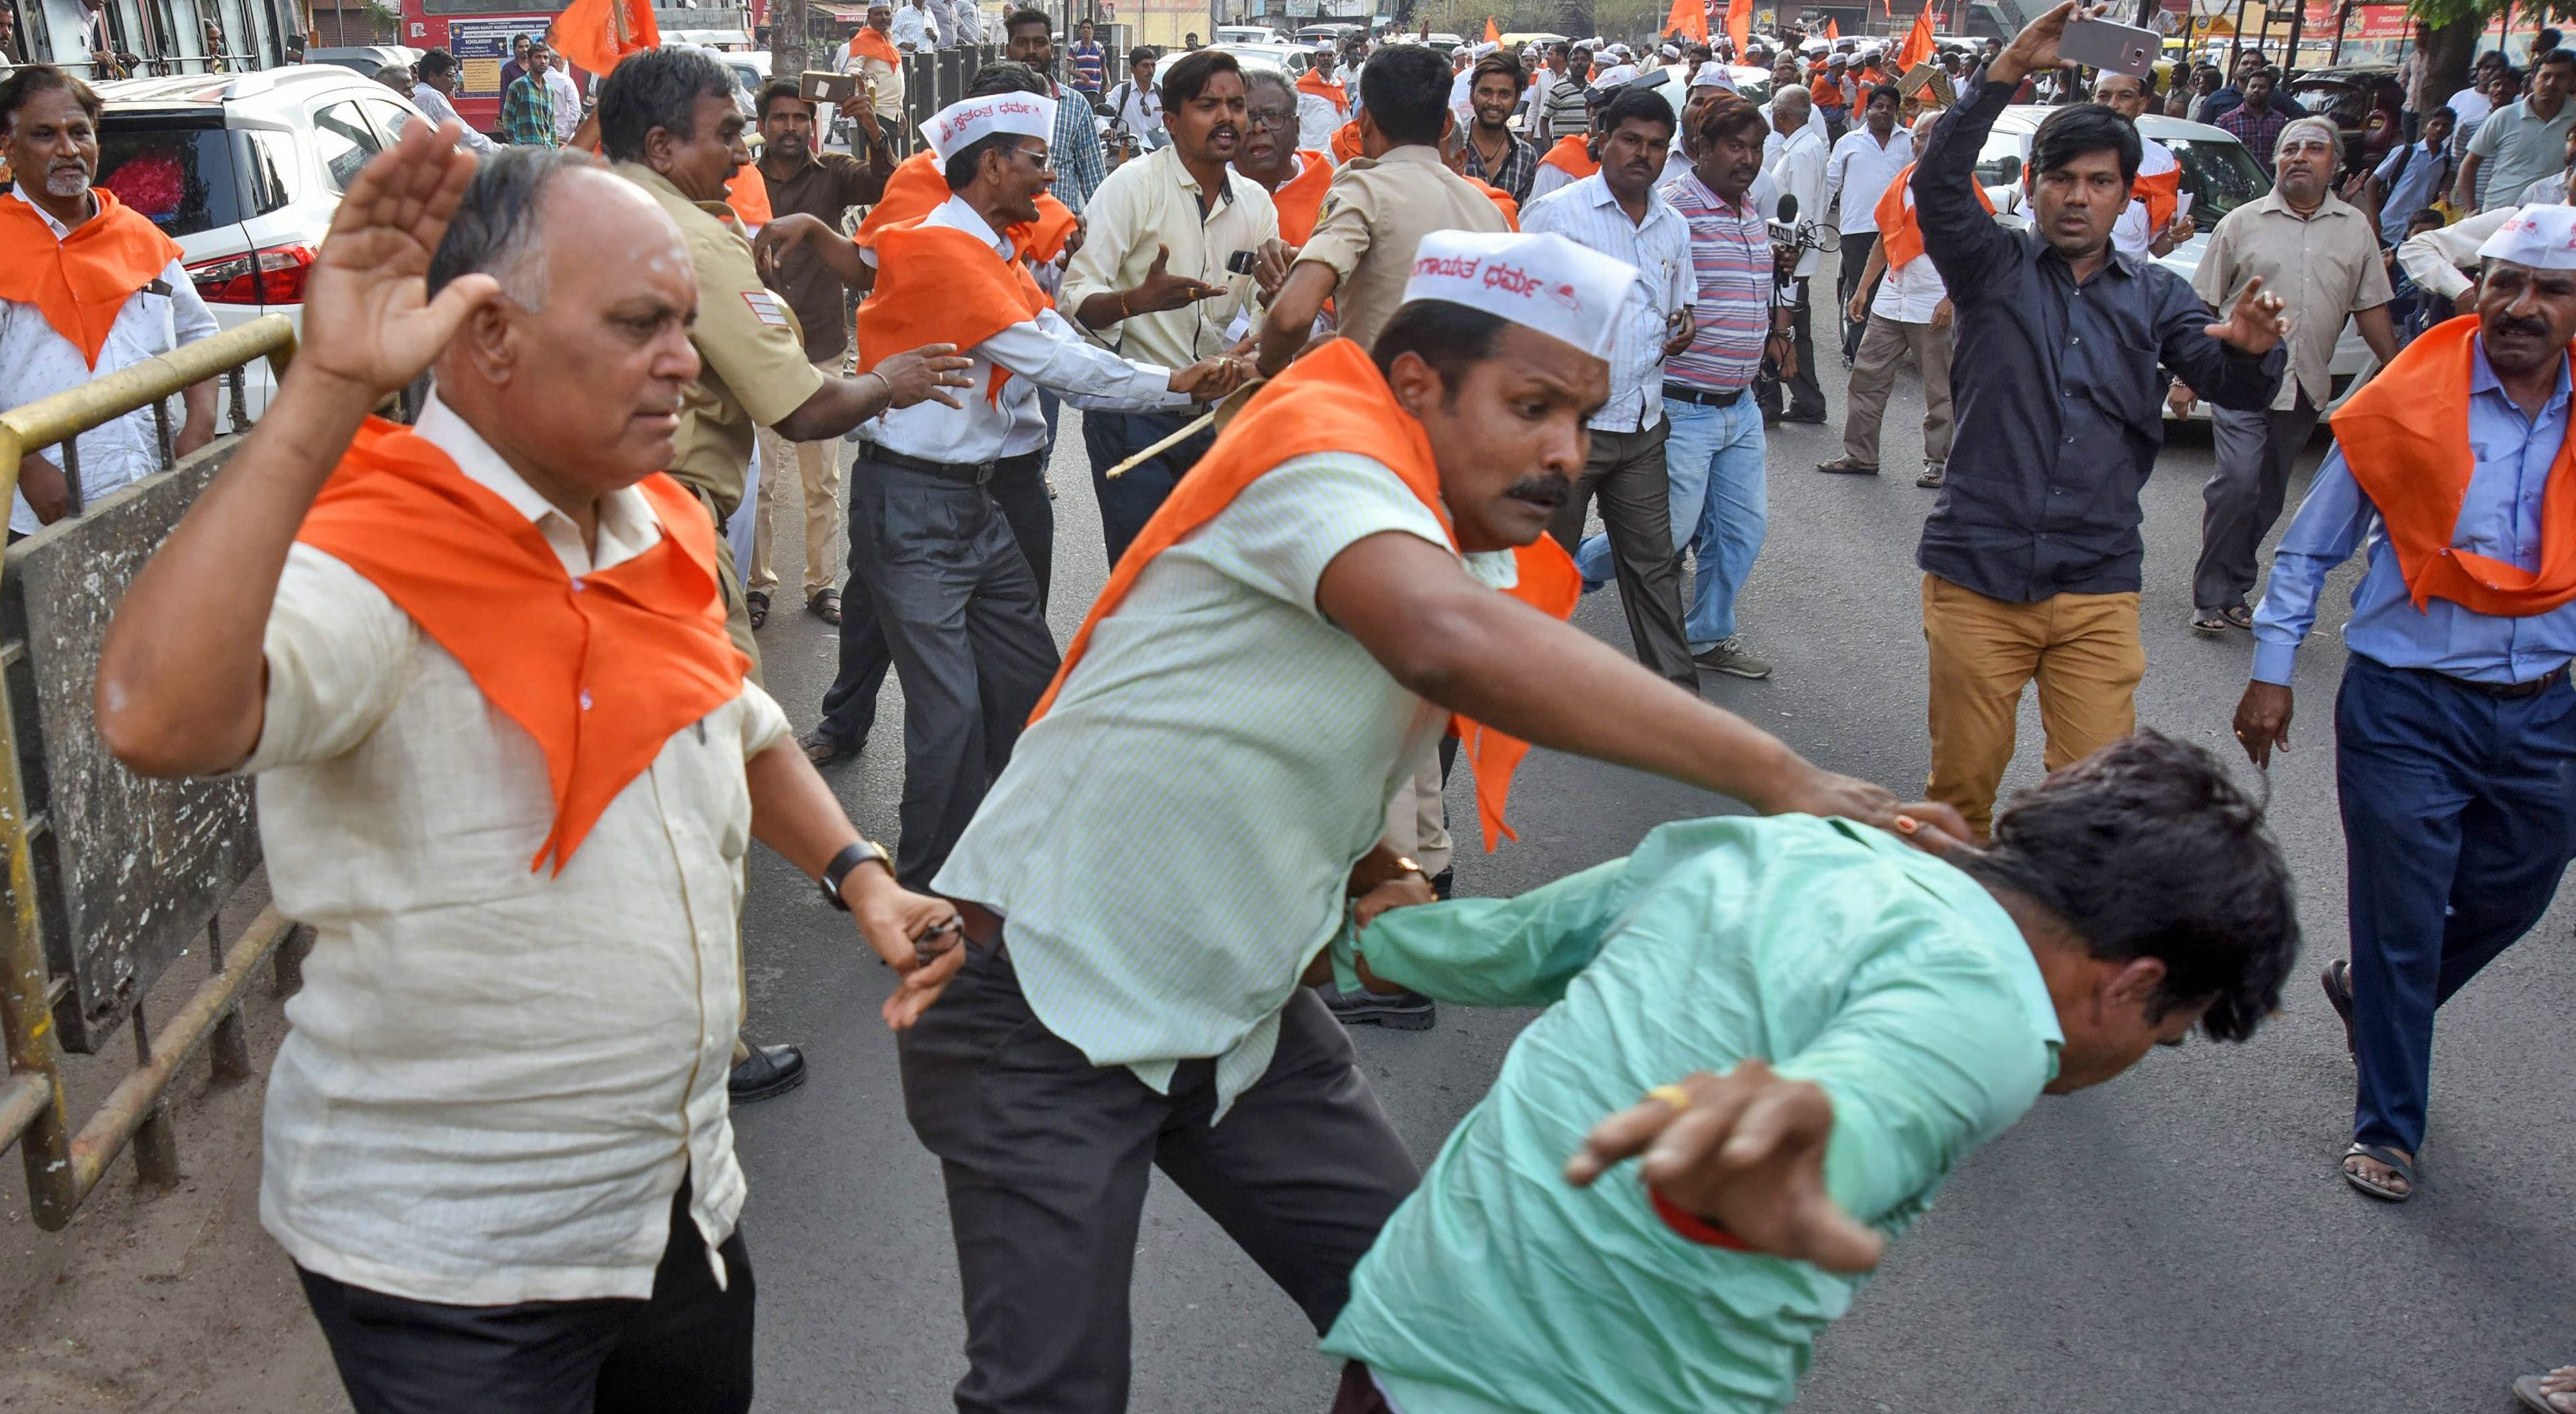 Clashes break out in Kalburgi, March 19, 2018, after the Karnataka government announced that the Lingayats would be granted a separate religion. Photograph: PTI Photo